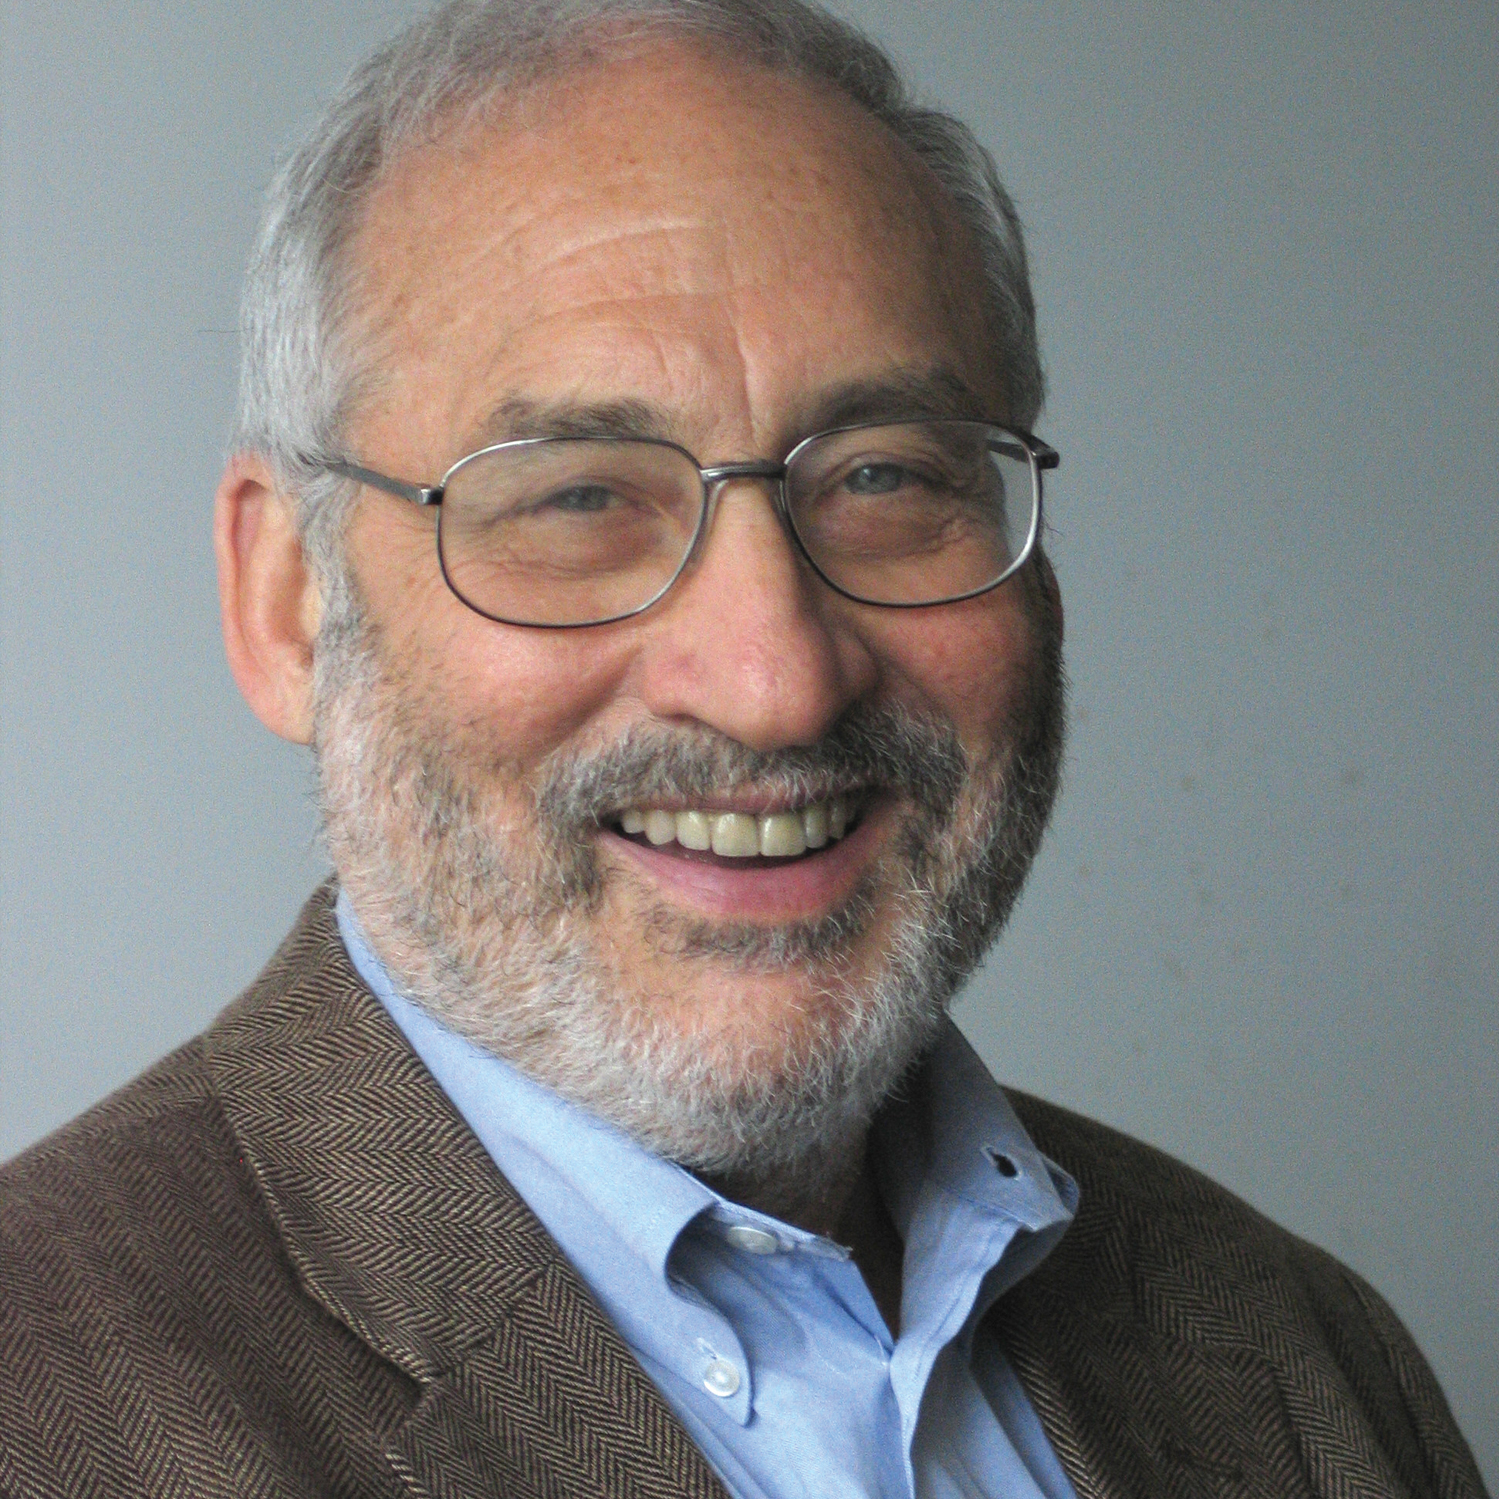 Joseph Stiglitz is a professor at Columbia University. He received the Nobel Prize in economics in 2001.